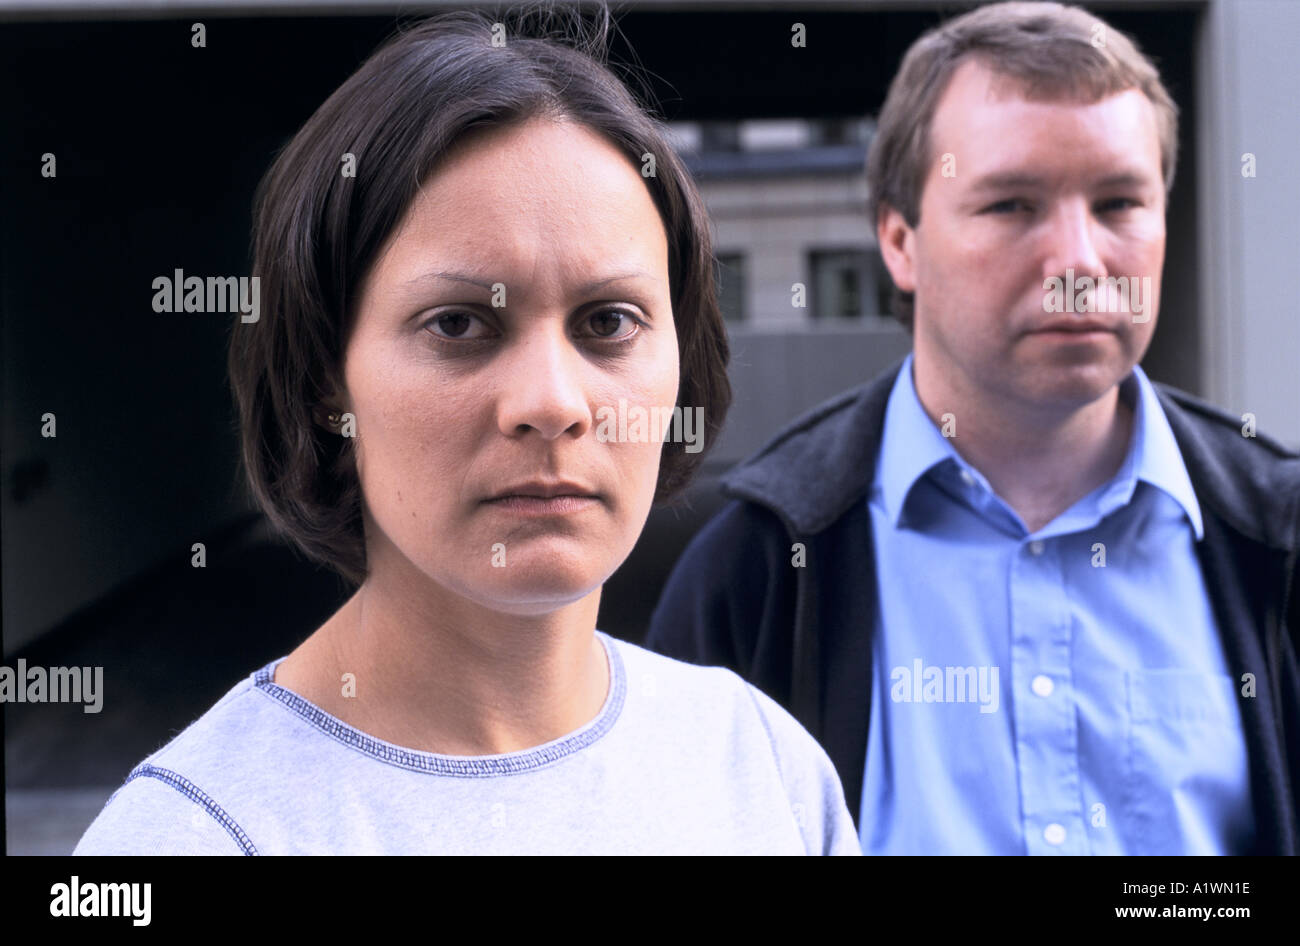 DAWN REED and CHRISTOPHER LILLIE. Nursery nurses who were awarded substantial damages after being wrongly accused of child abuse - Stock Image